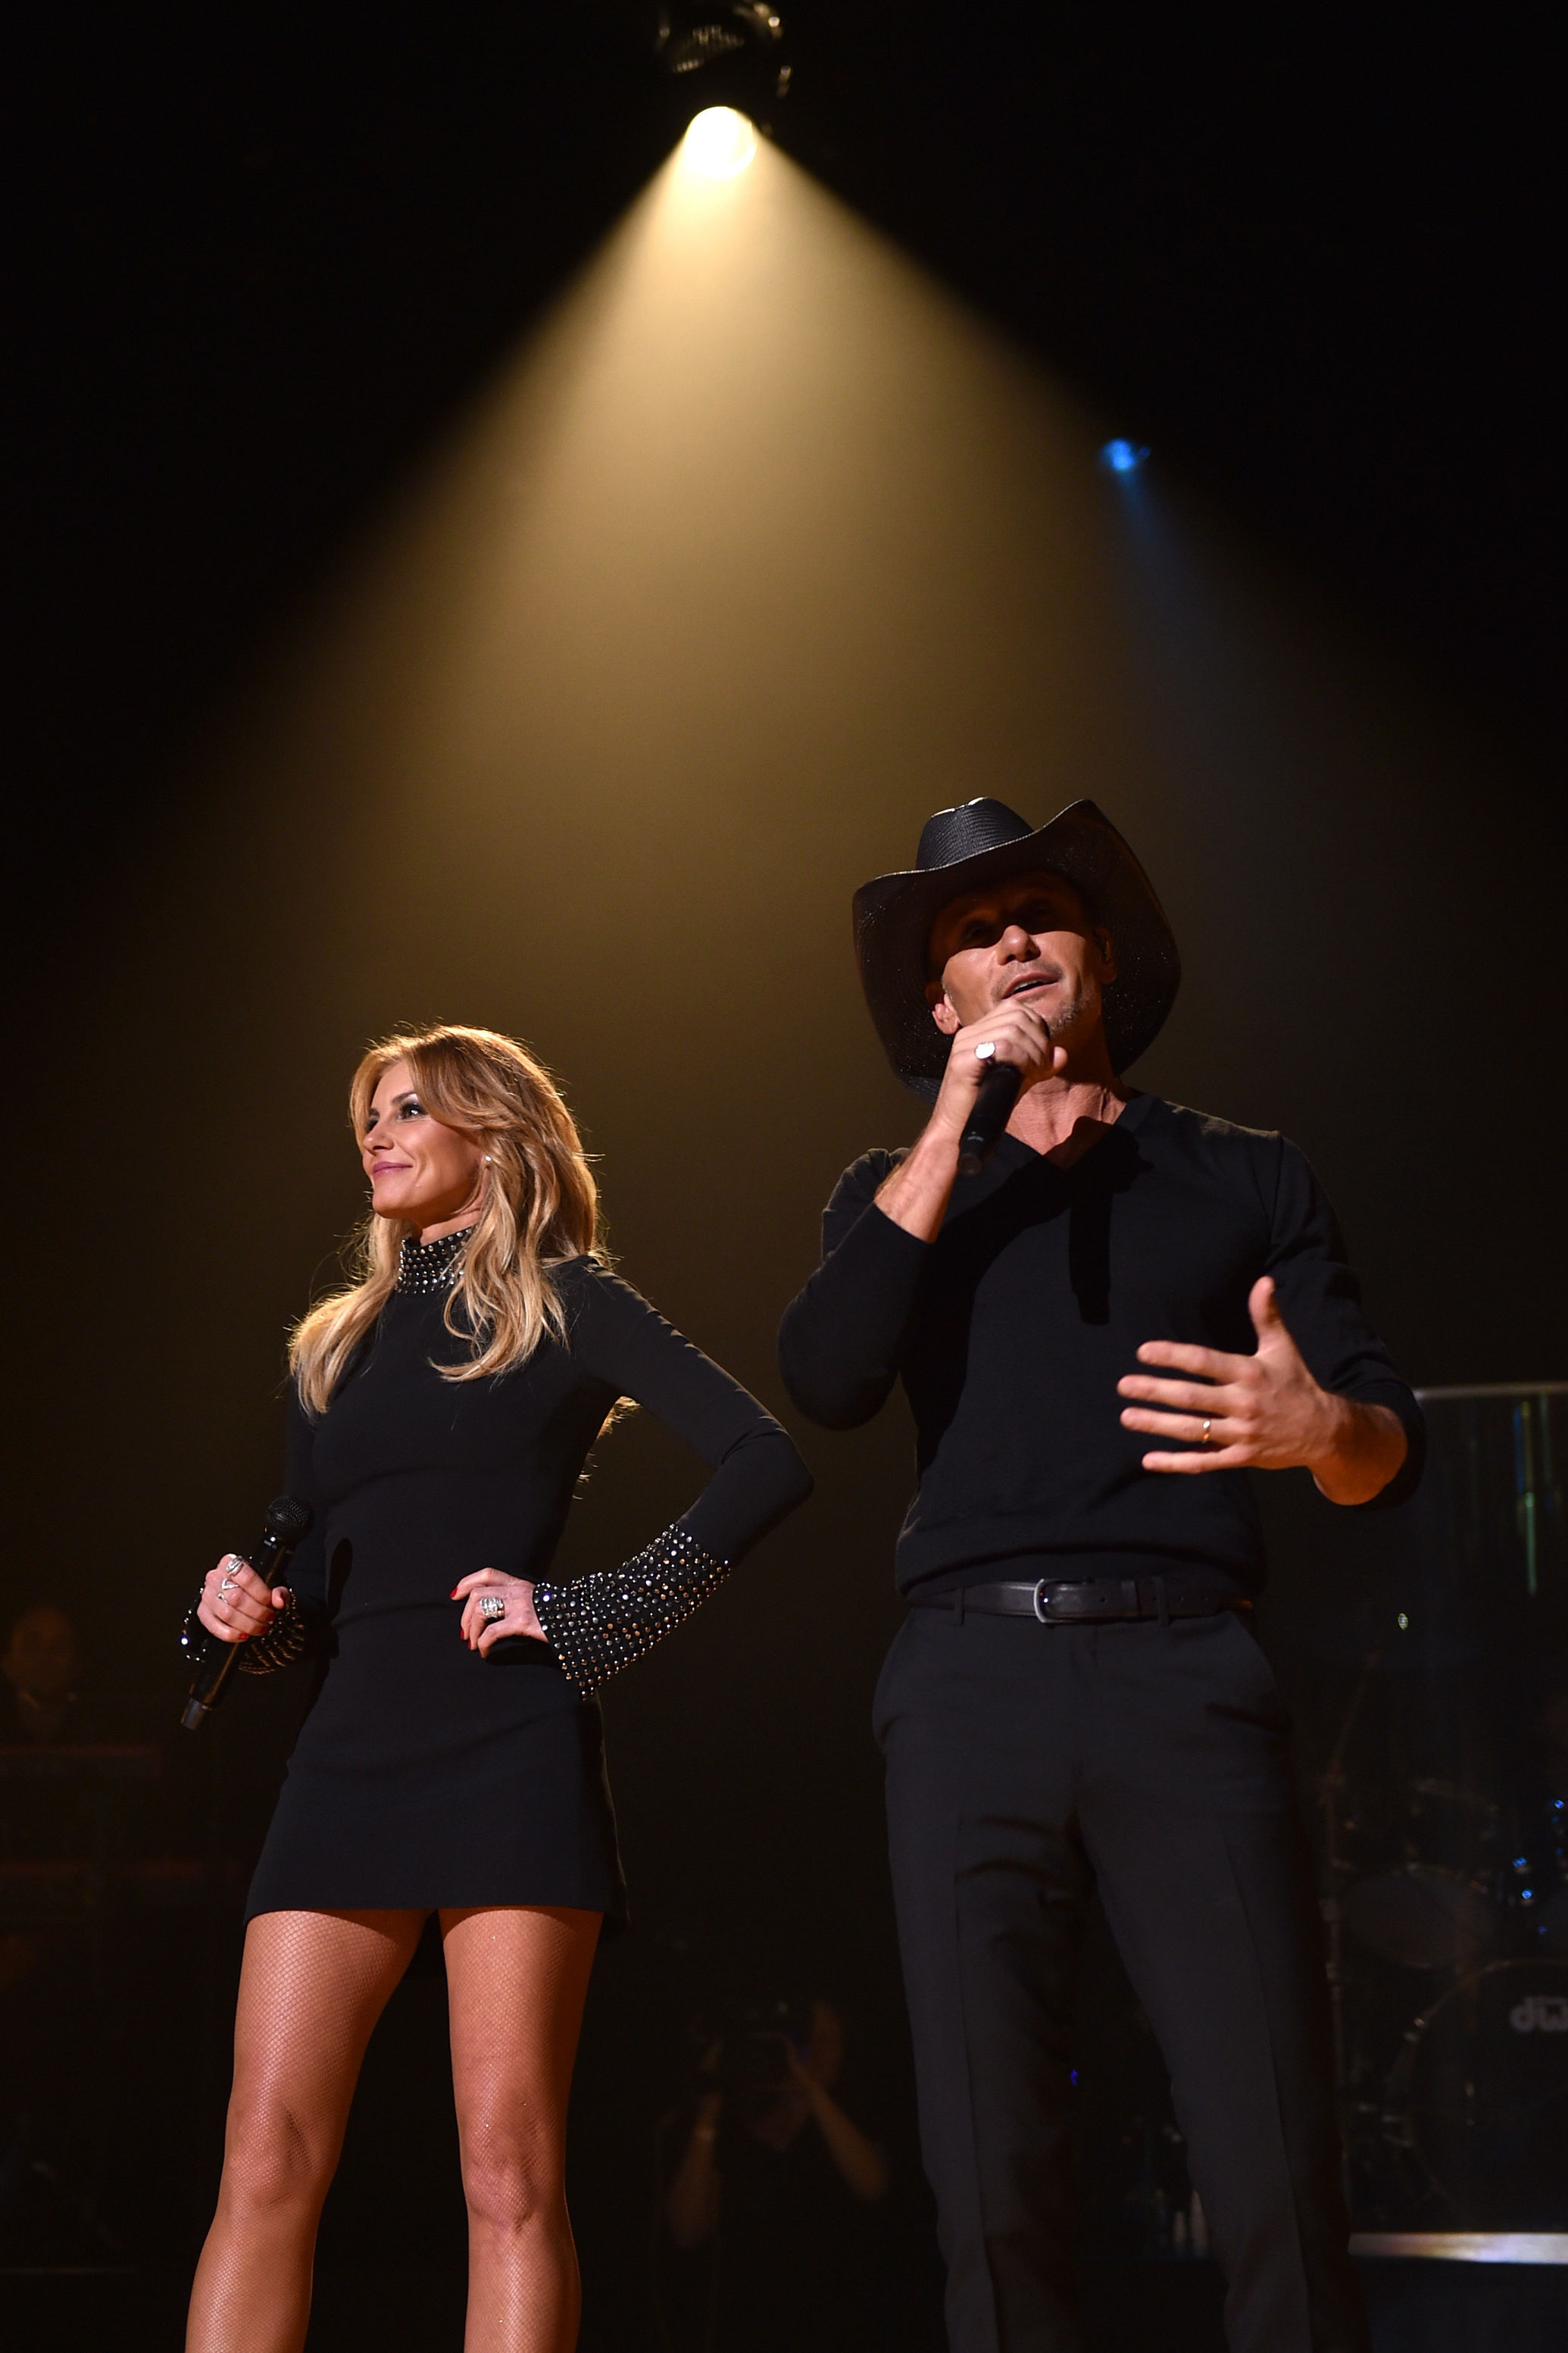 We Have Some Good News for All You Tim McGraw and Faith Hill Fans!